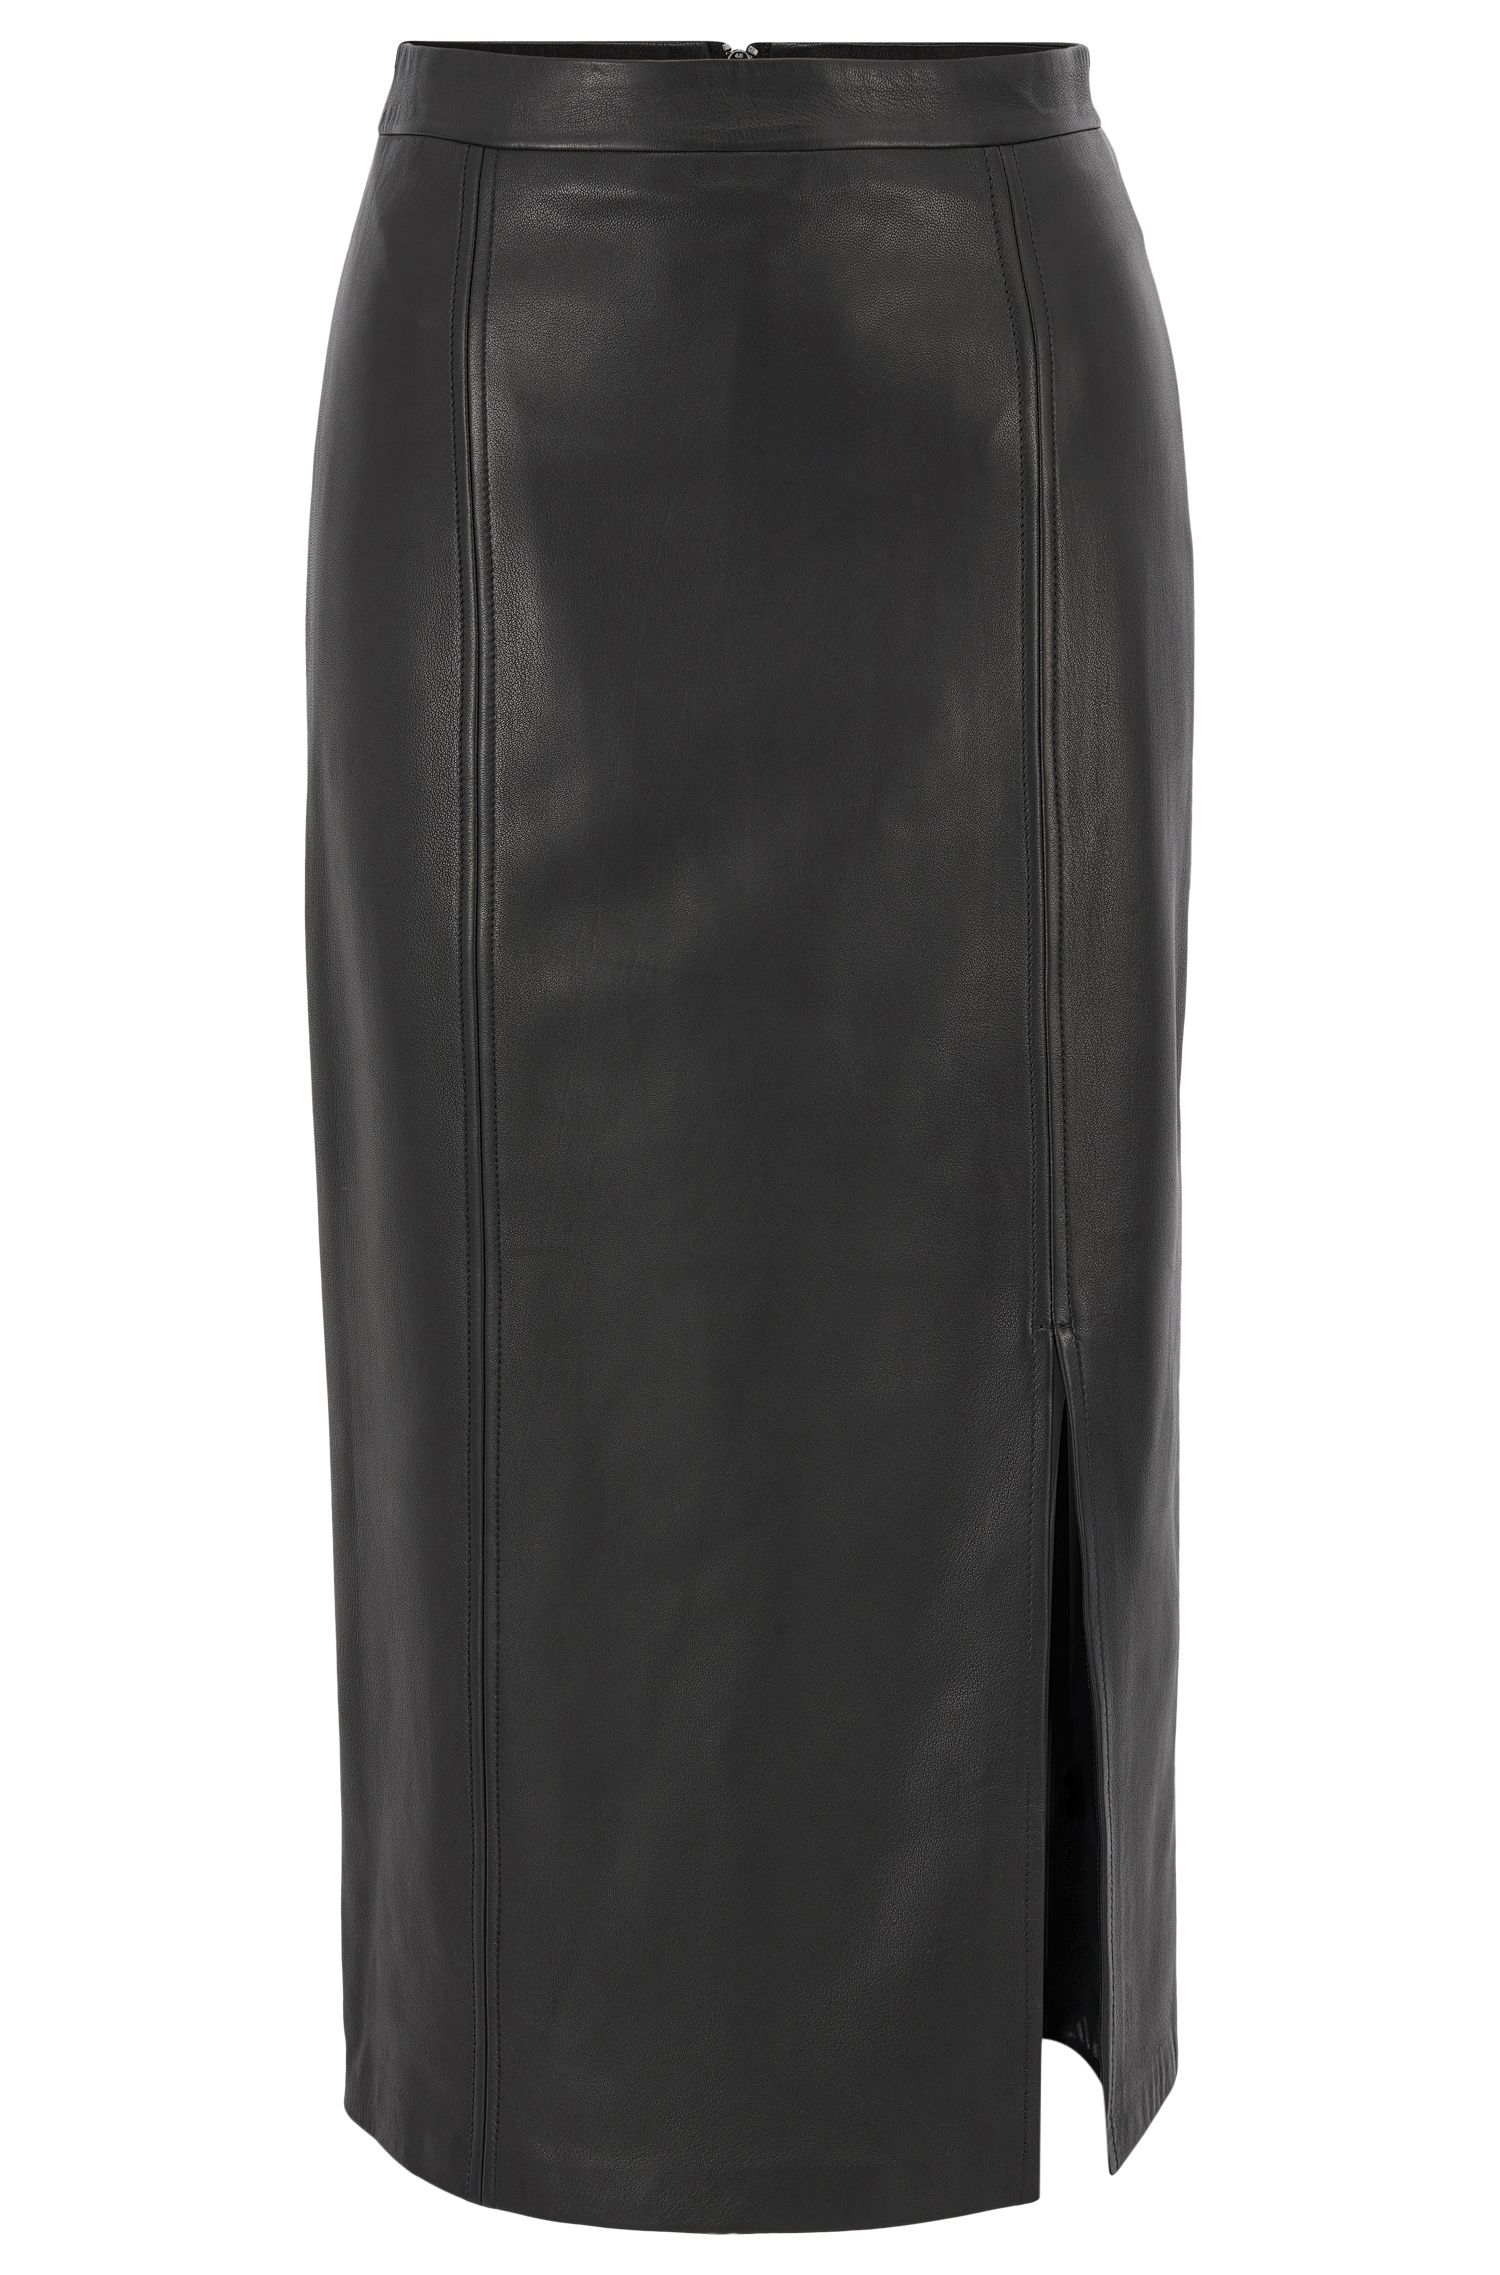 Pencil skirt in lamb leather